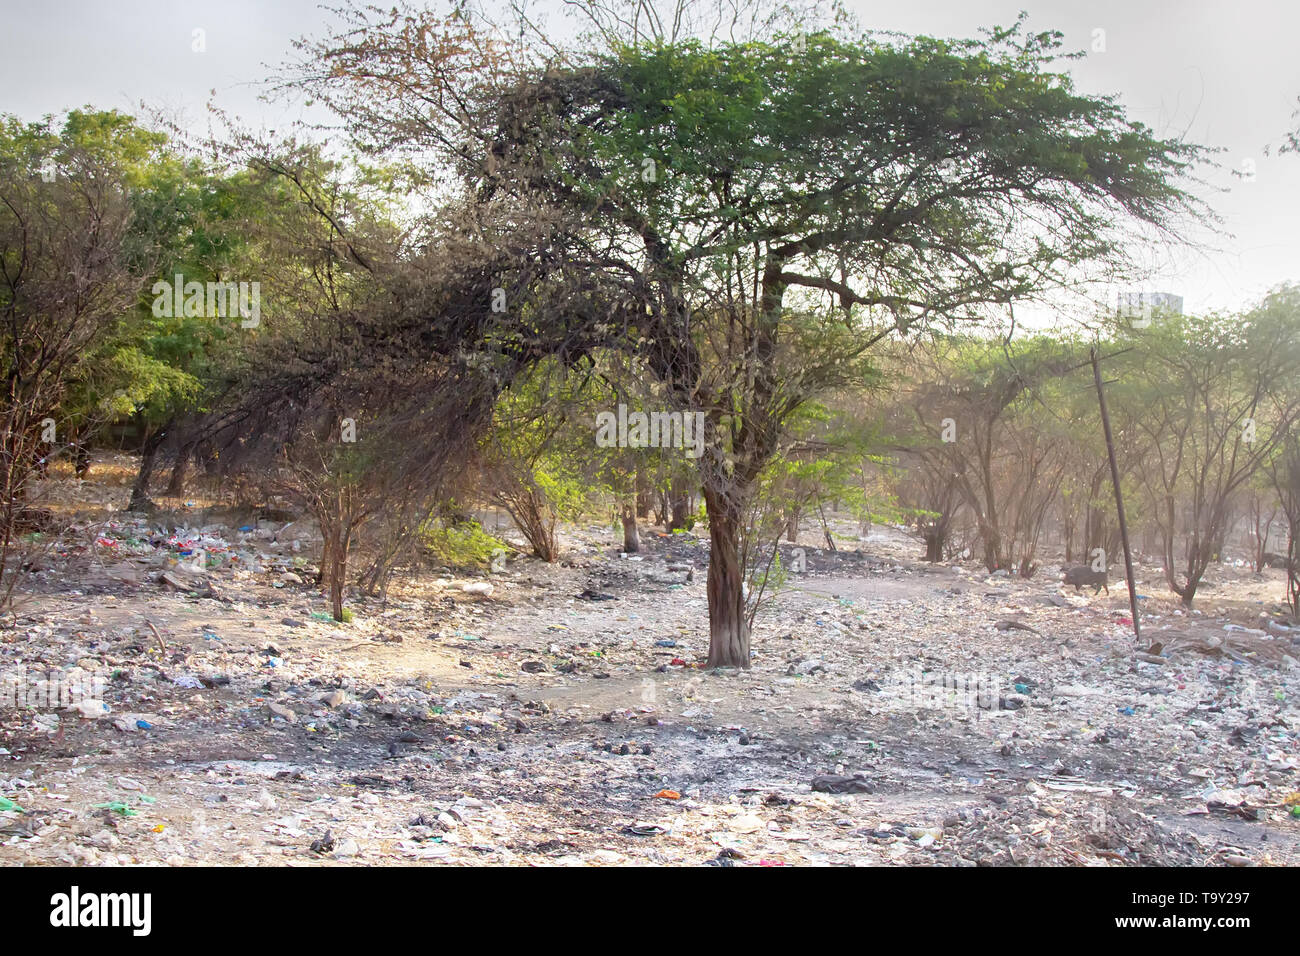 Dumping of household waste n acacia grove, India - Stock Image